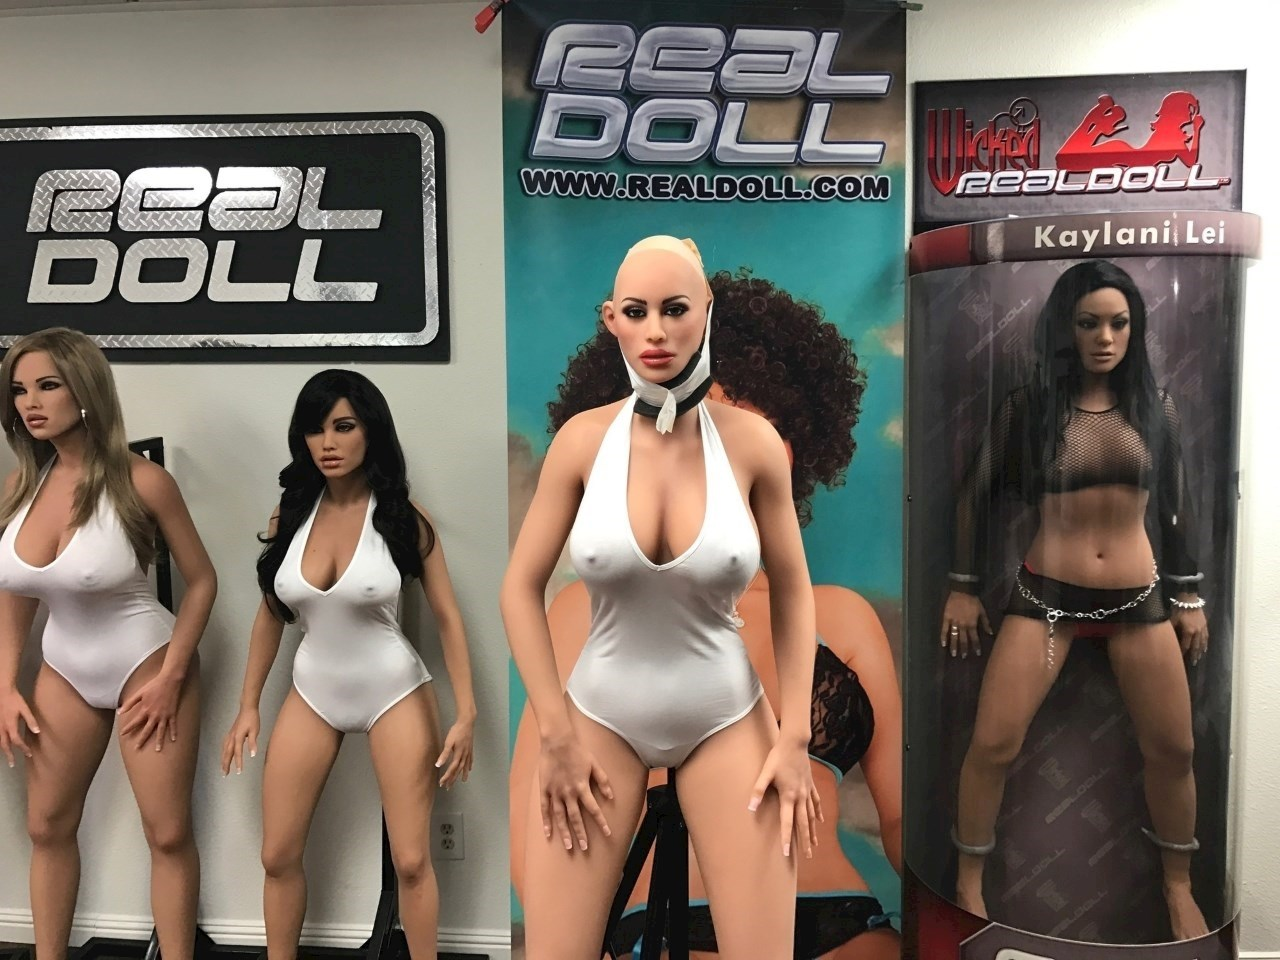 Unlike previous models, Harmony isn't just a realistic looking sex doll